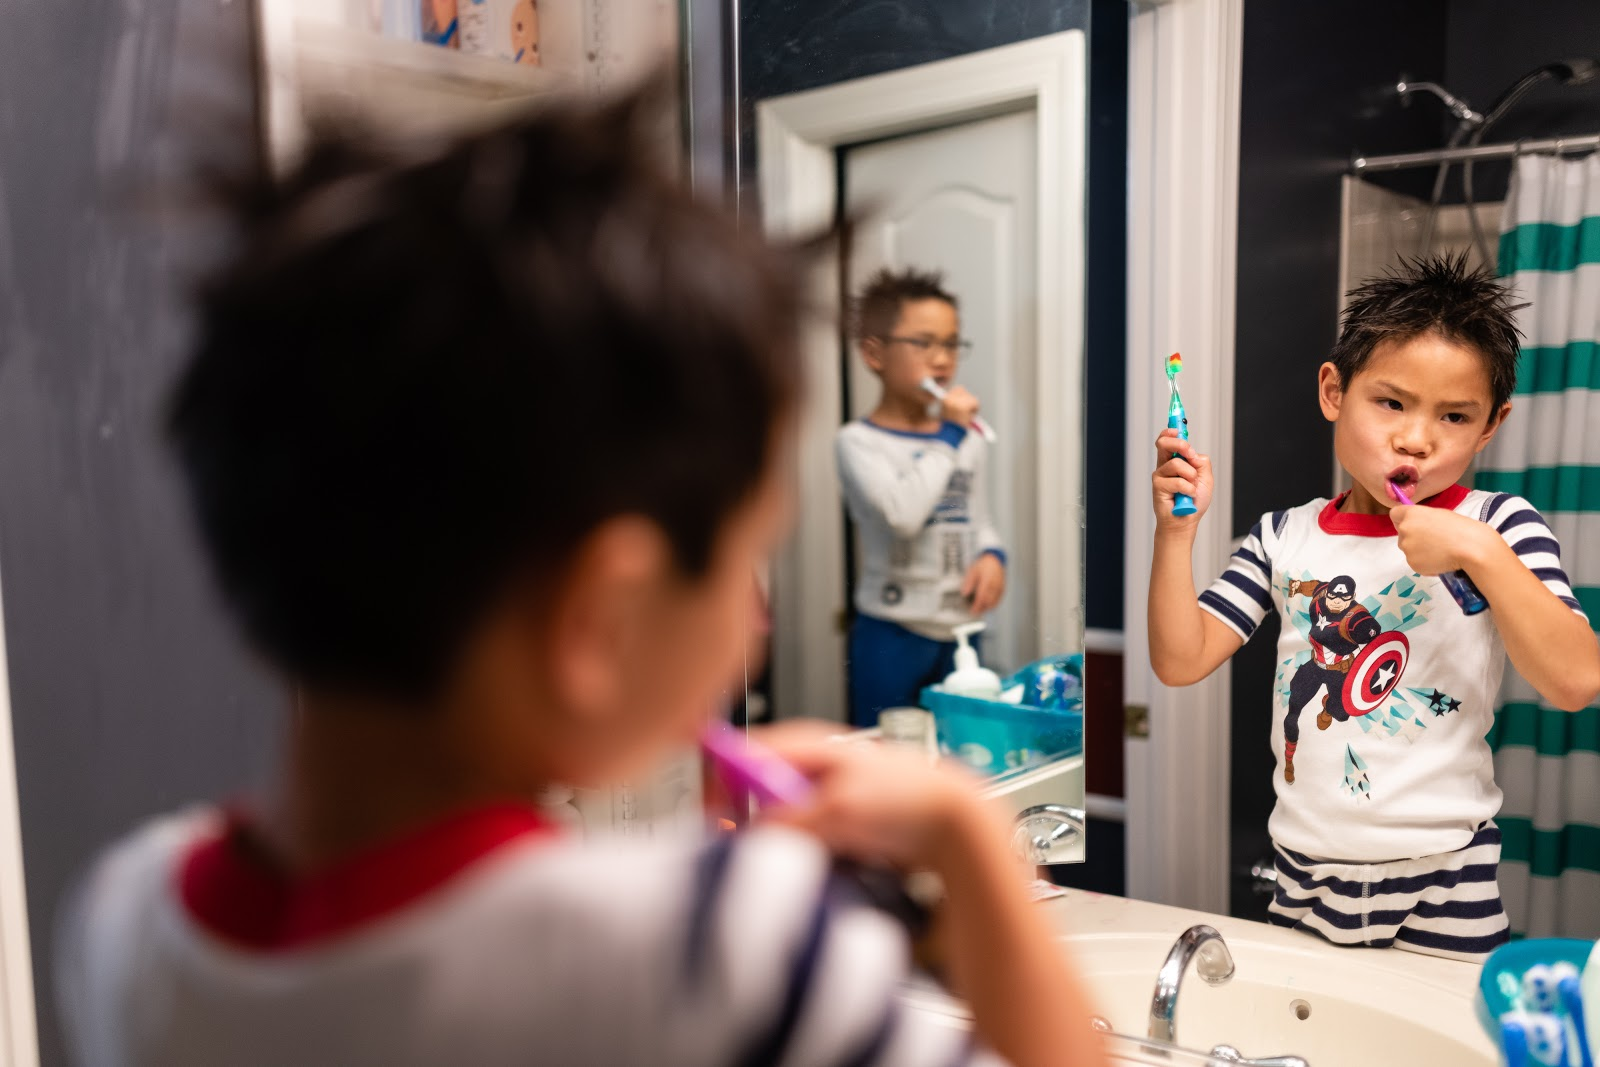 Children brushing teeth in bathroom